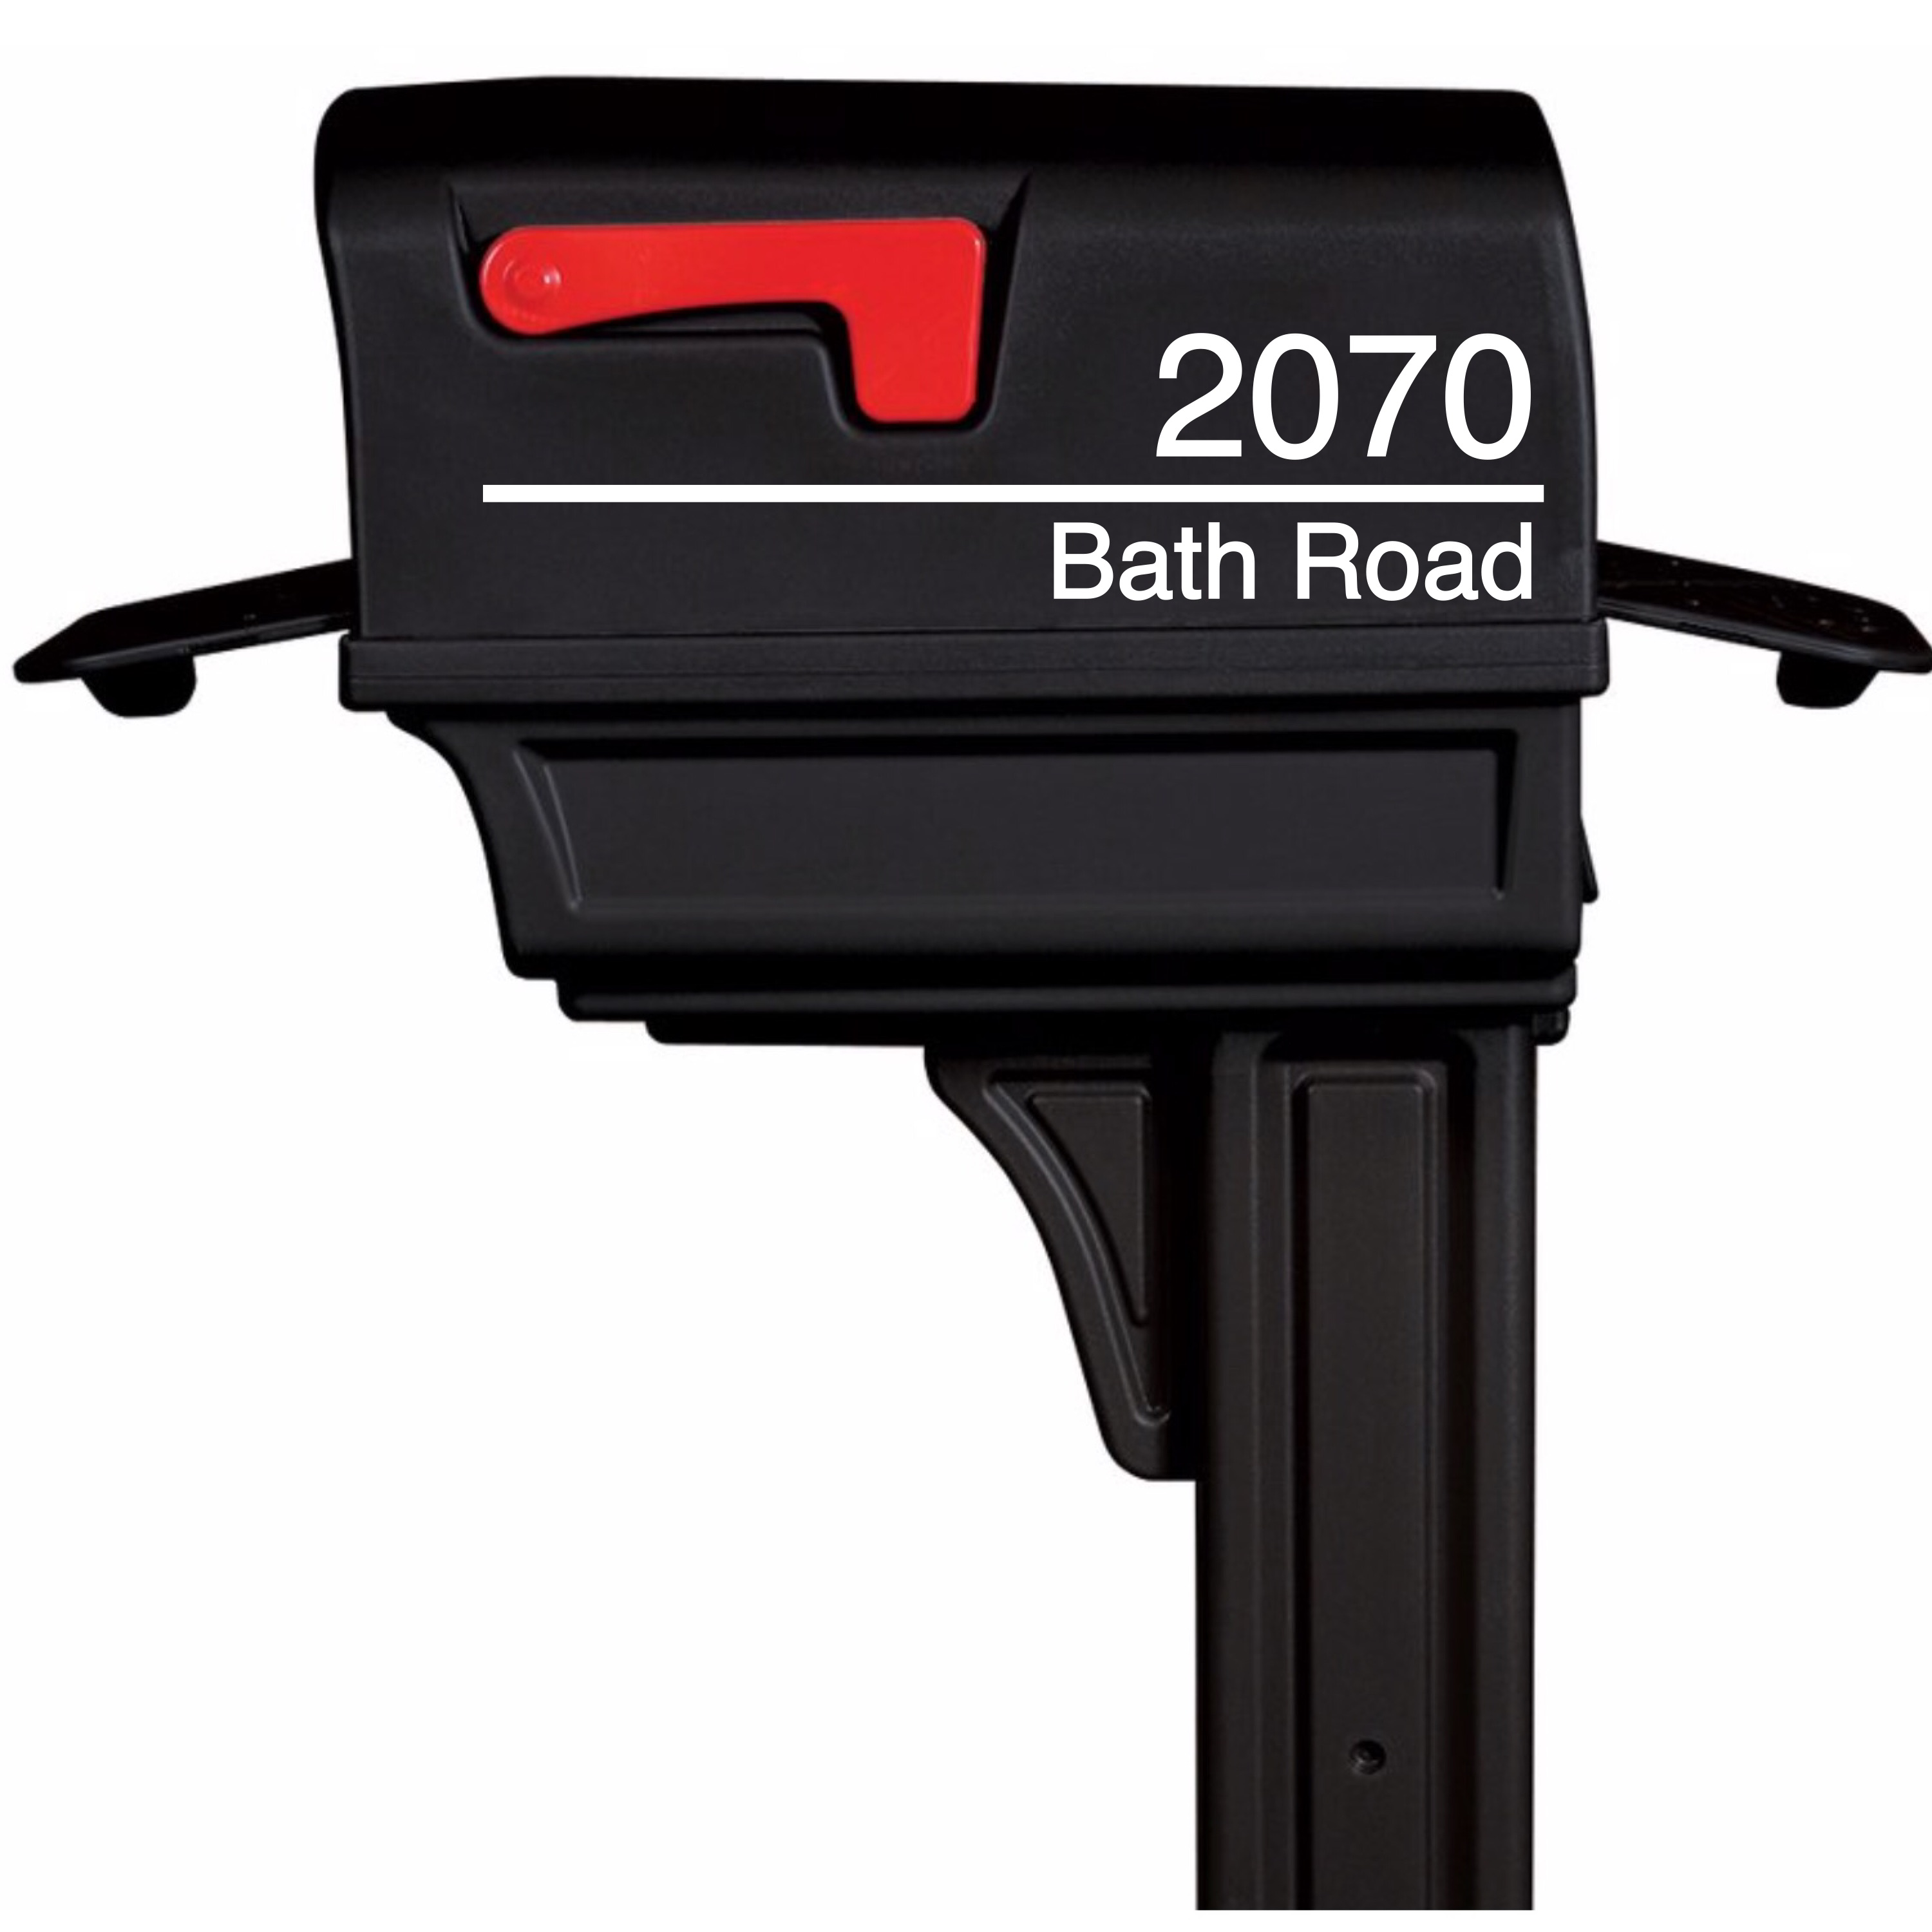 House Address Mailbox Decal (Style 1)